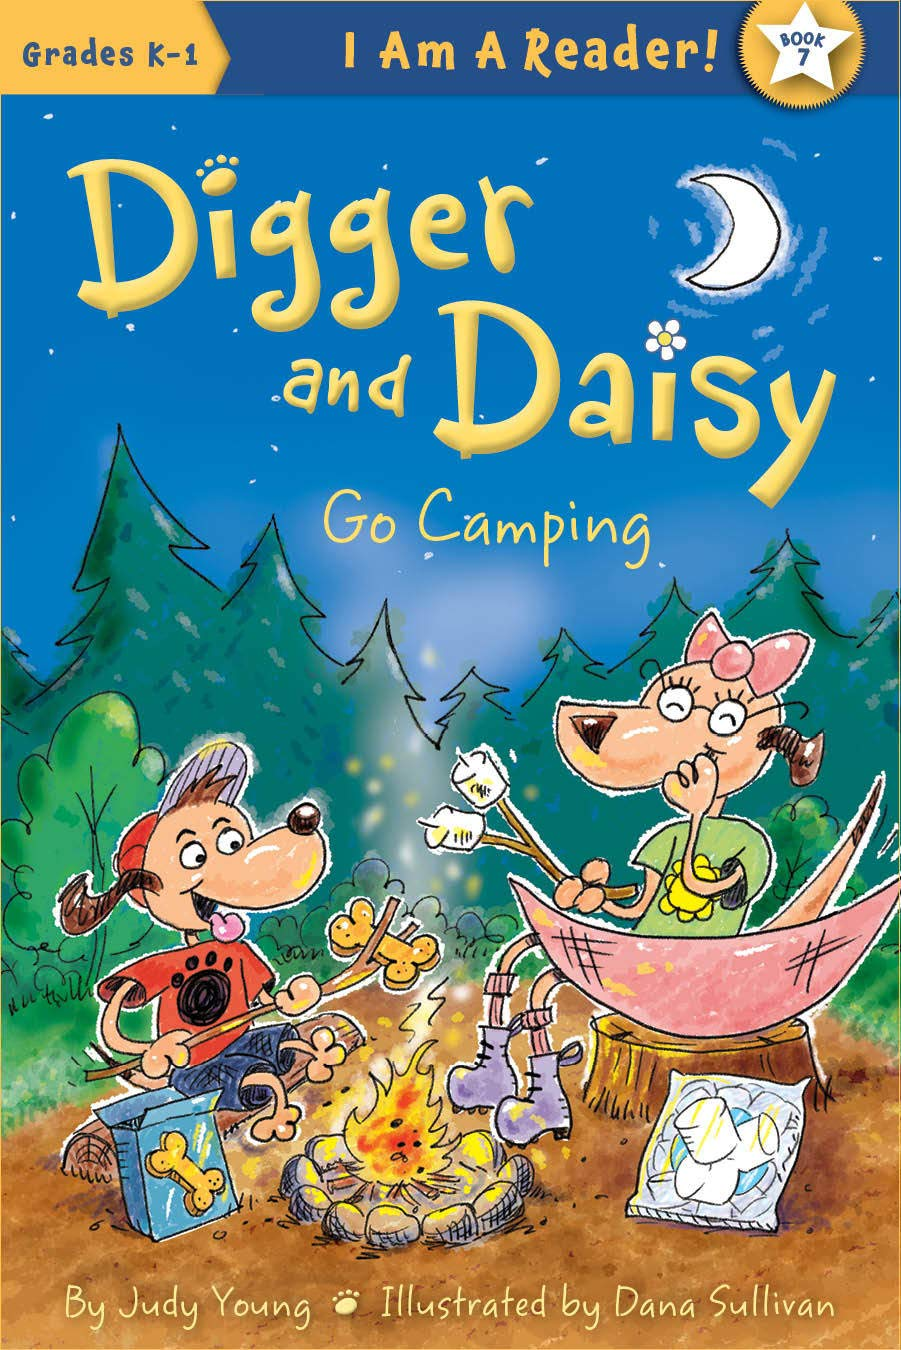 Digger and Daisy Go Camping (I AM A READER: Digger and Daisy)